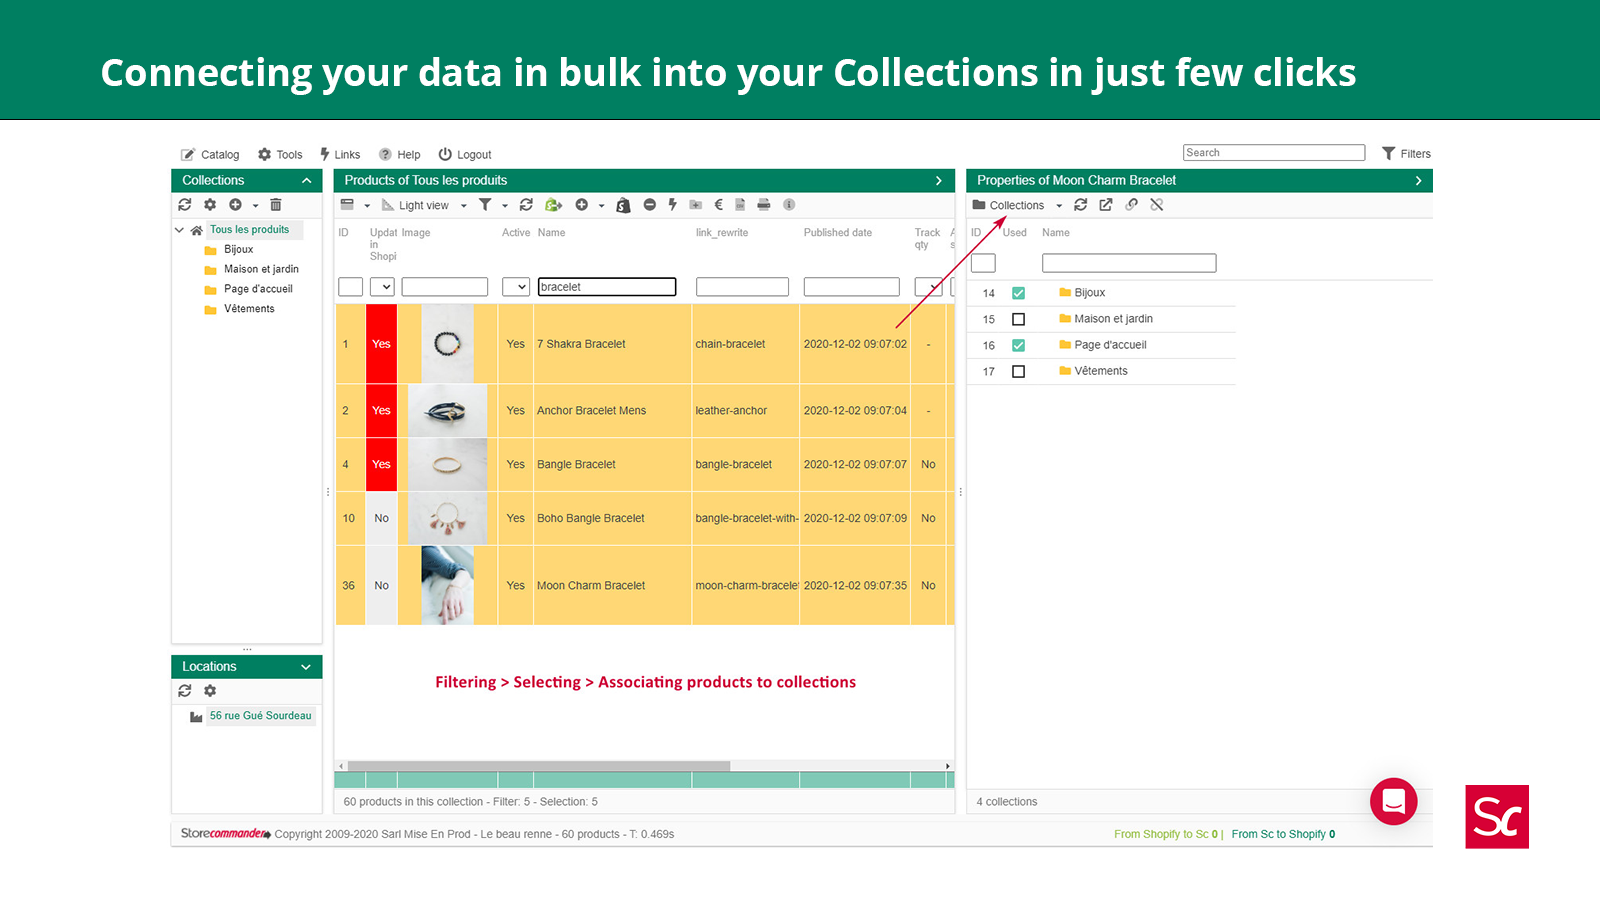 Connecting easily your data in bulk into your Collections